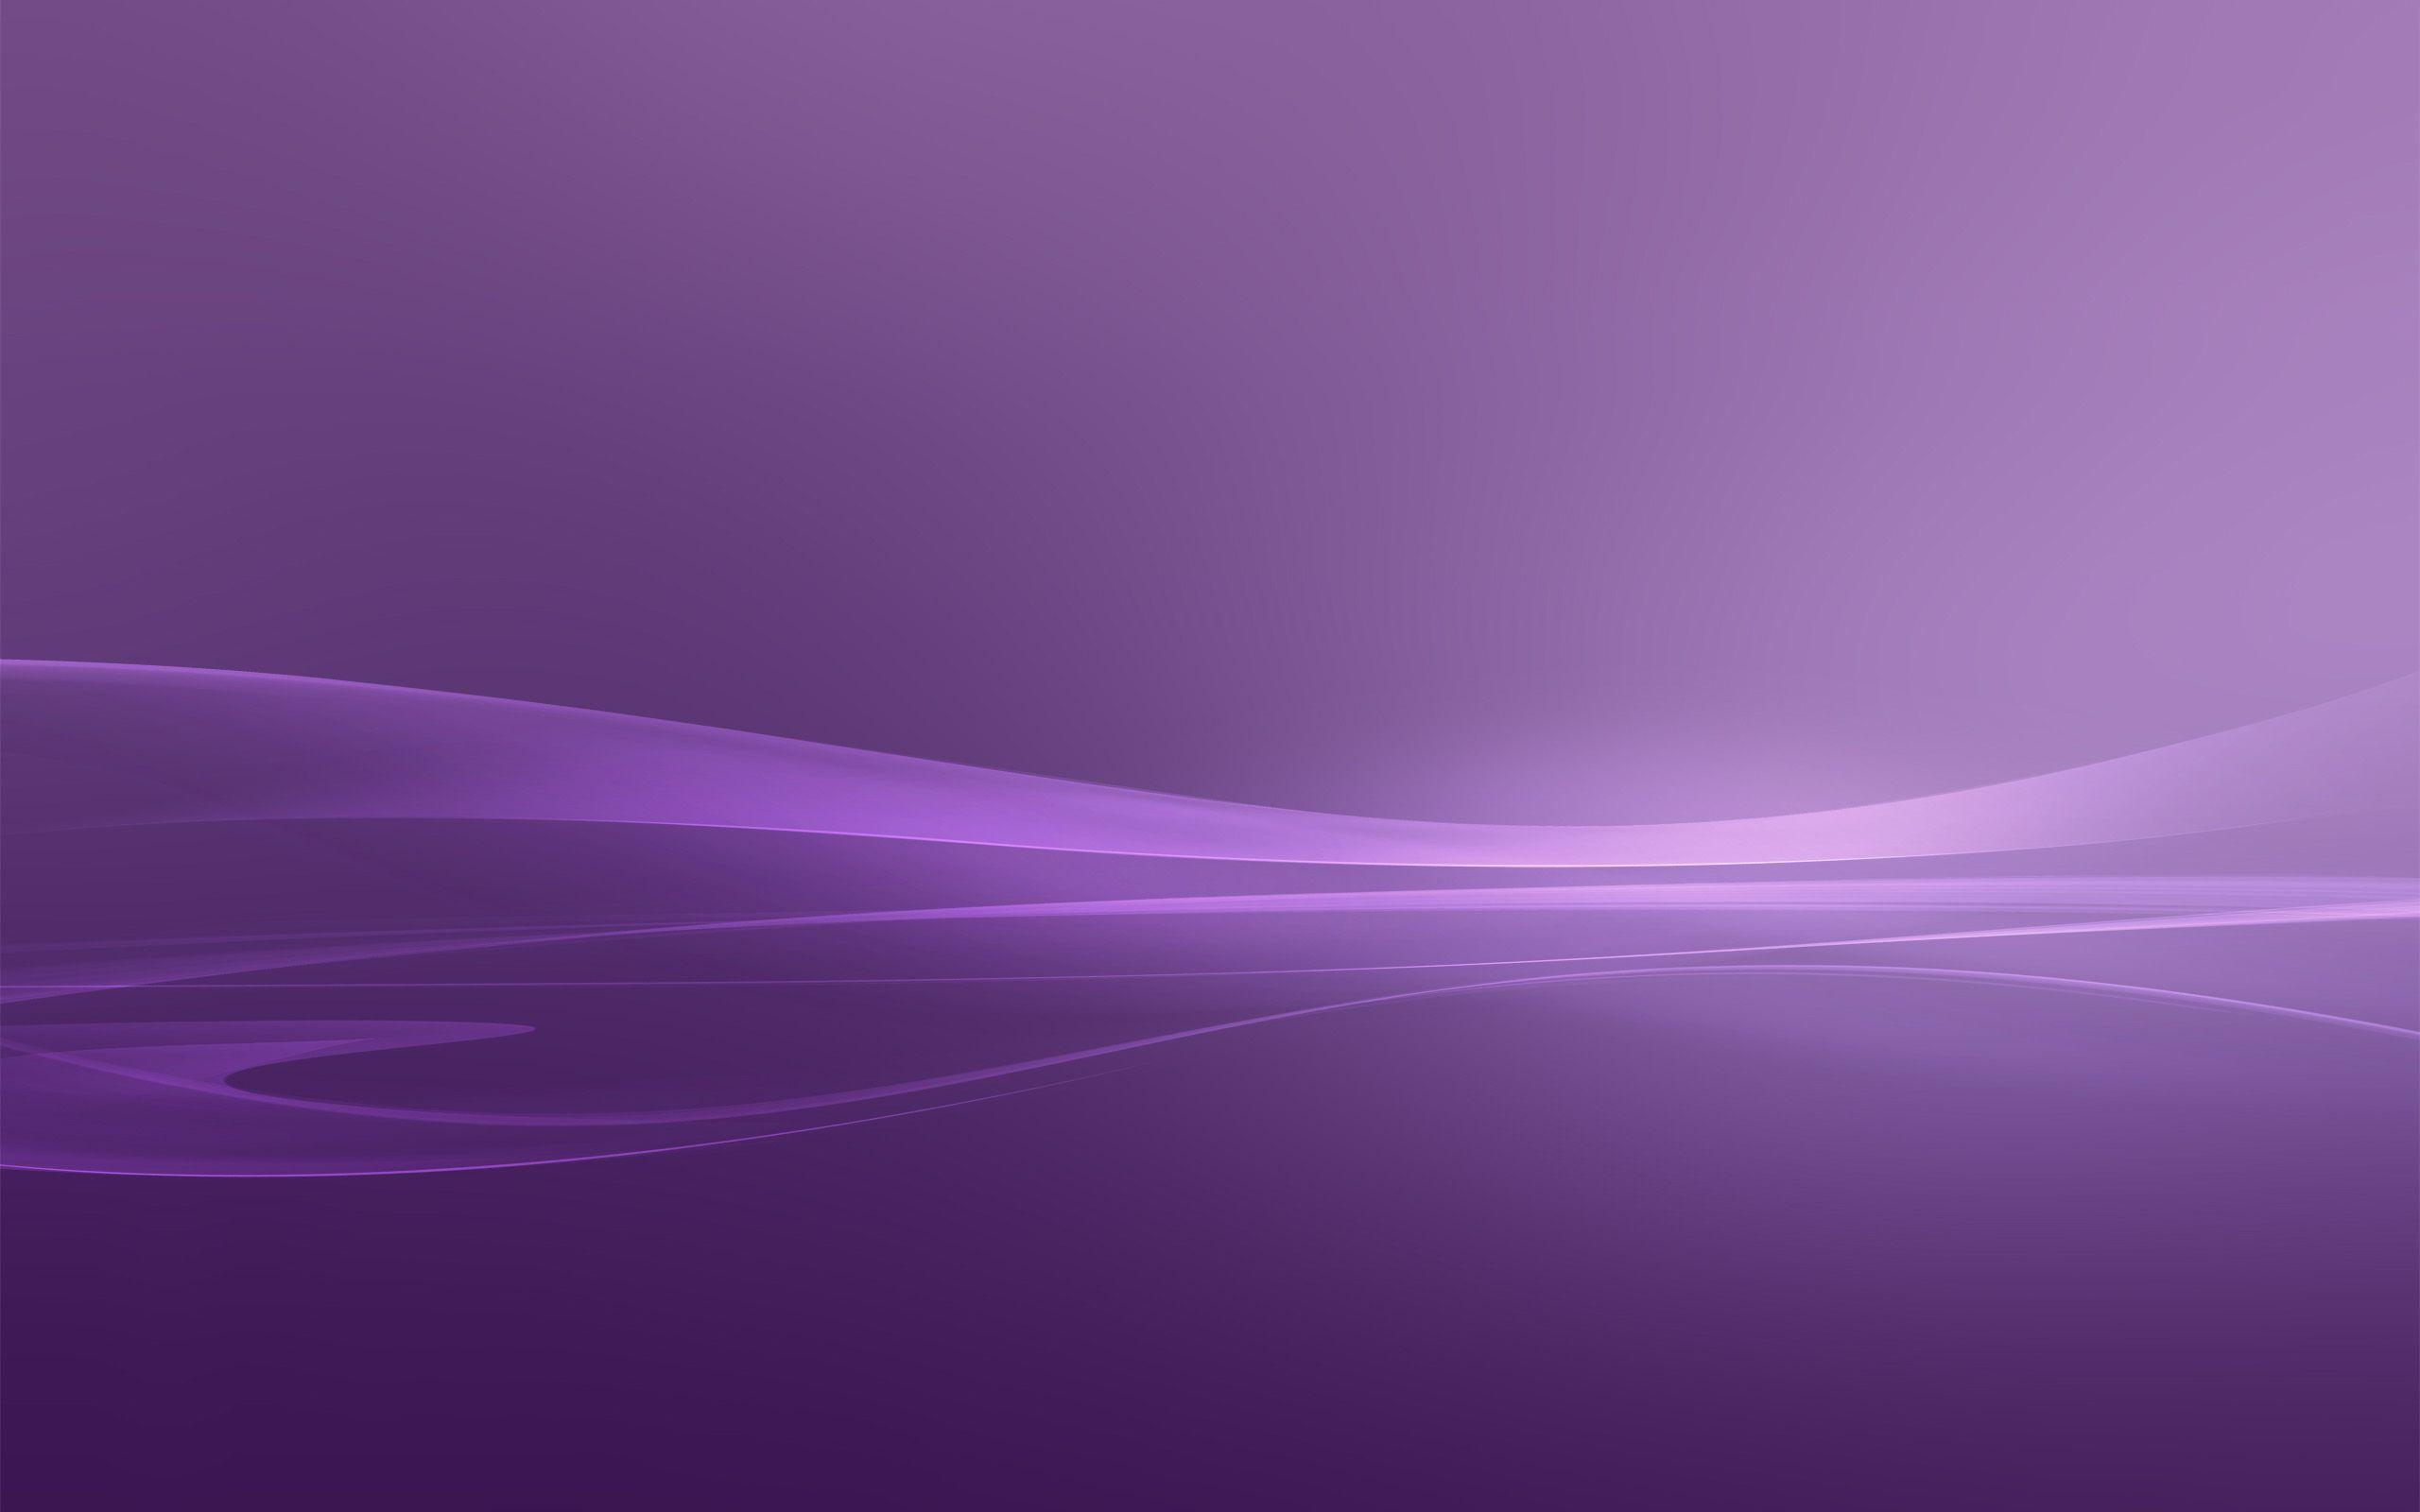 lavender color wallpaper hd - photo #16